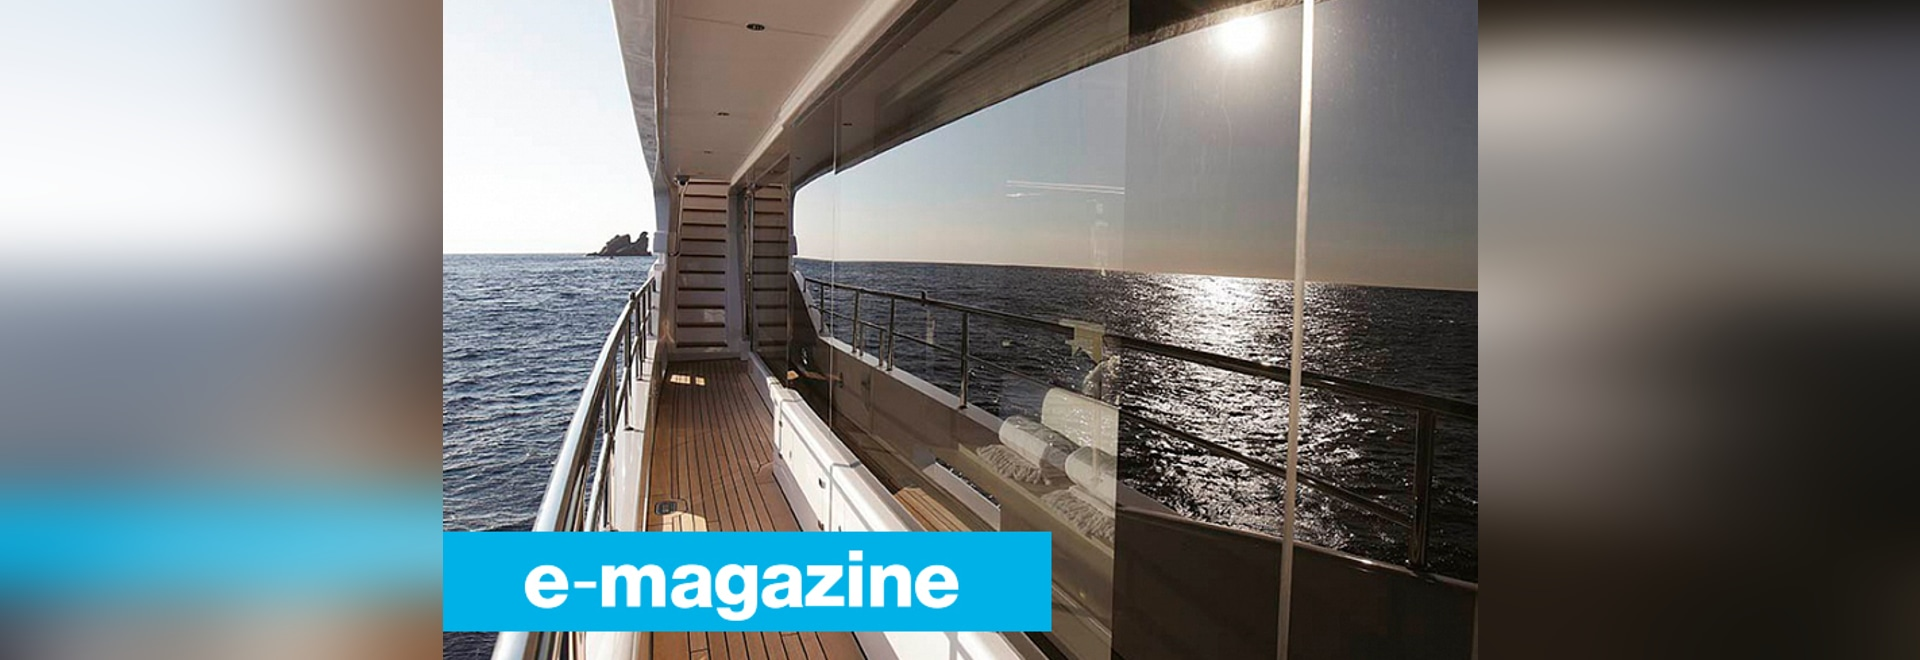 Glazing at Cannes Yachting Festival